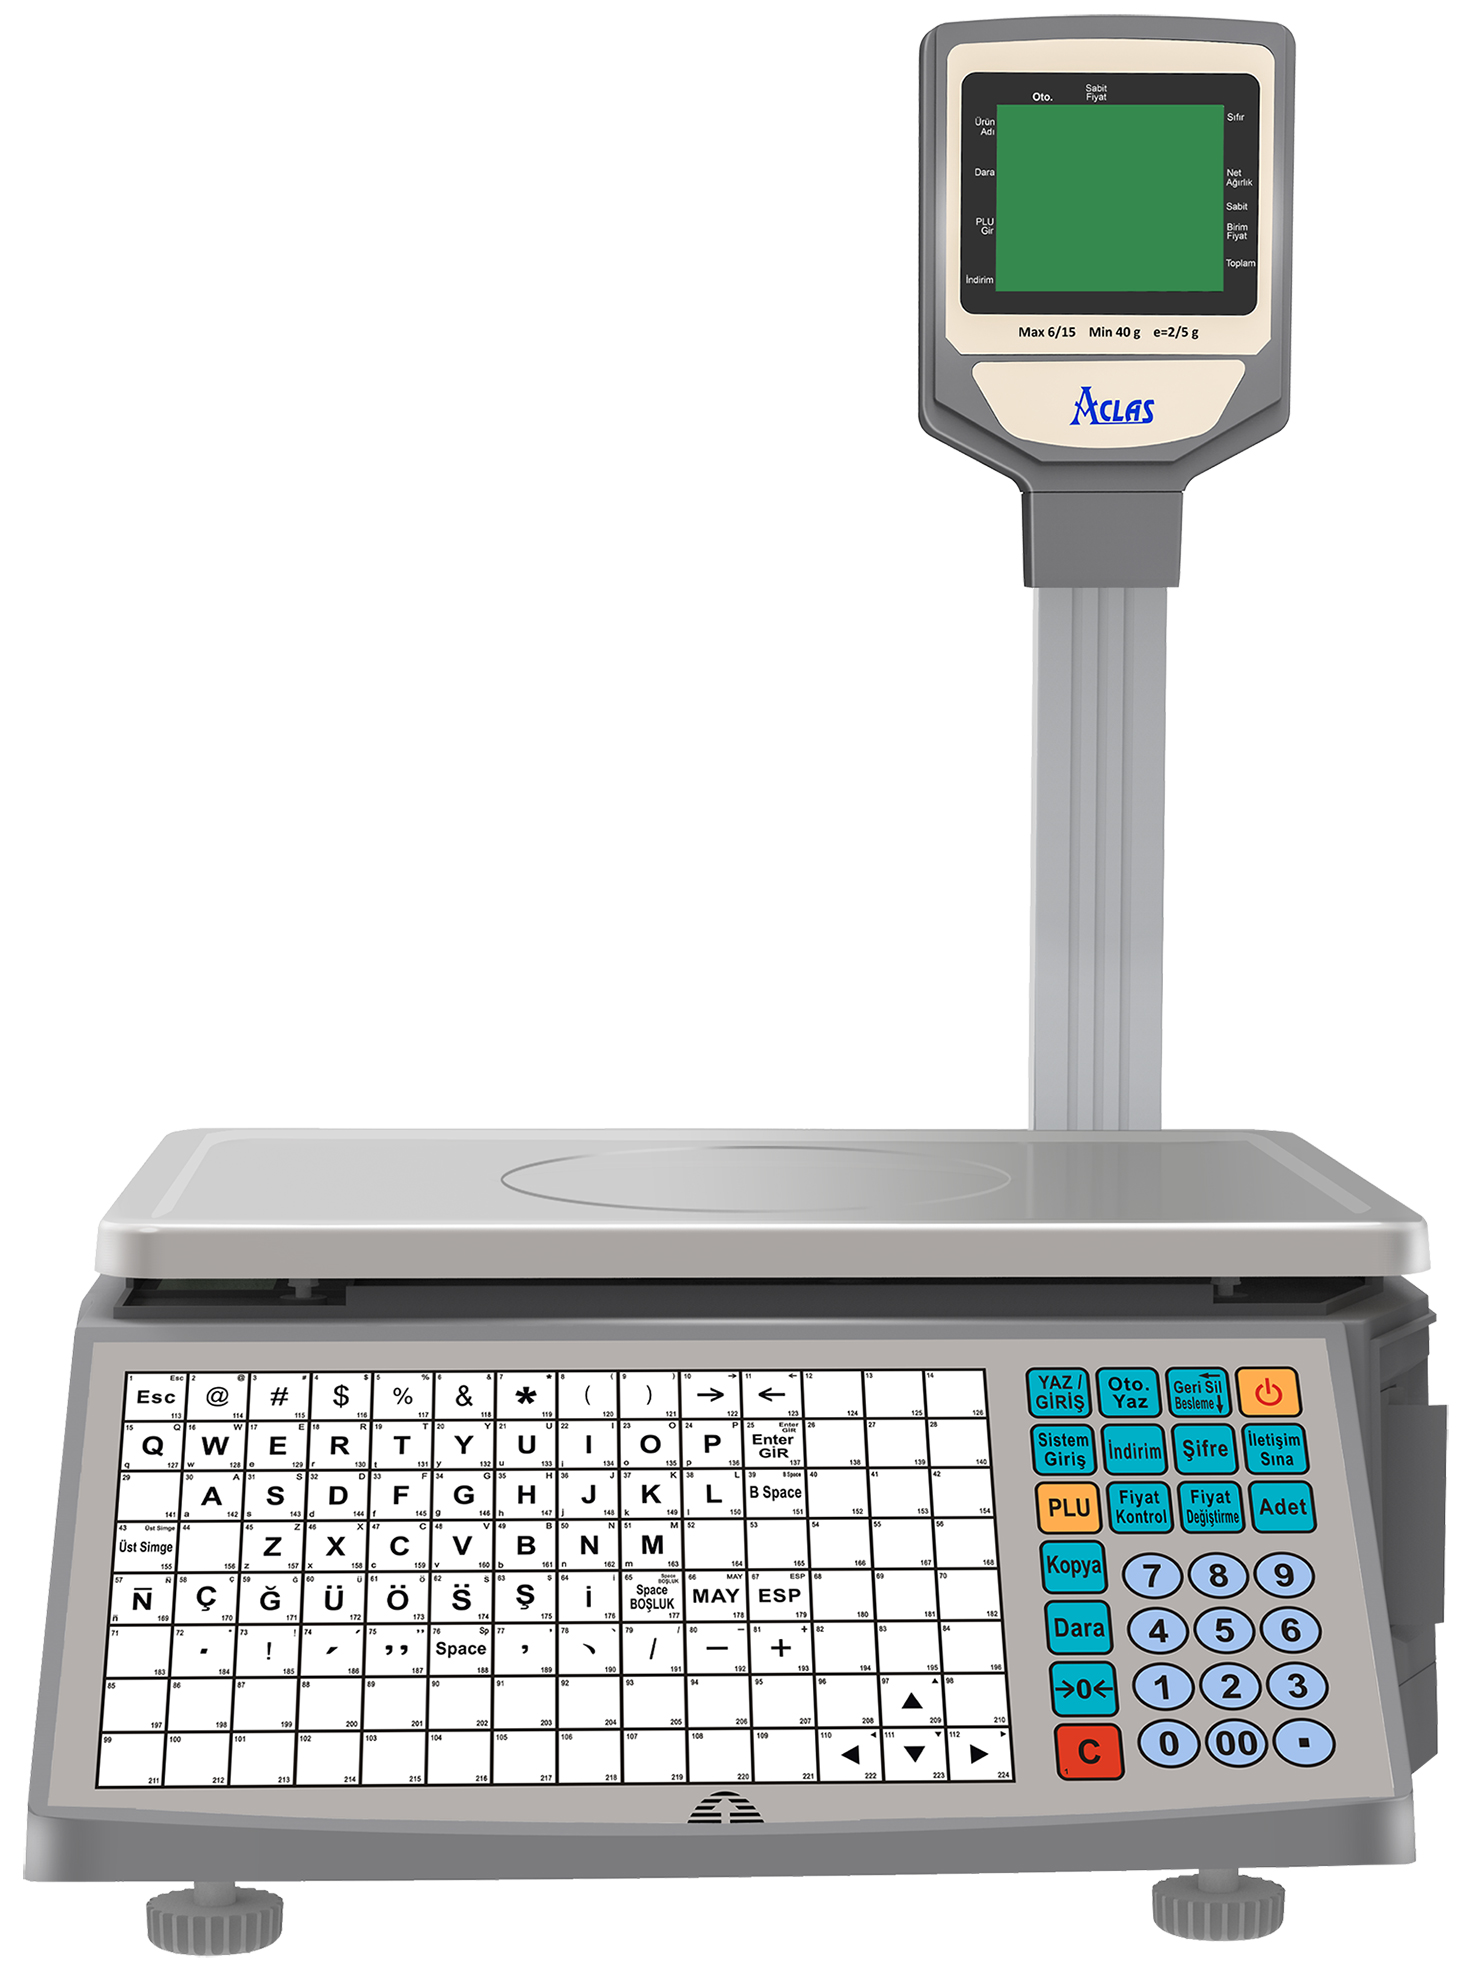 aclas ls2 scale